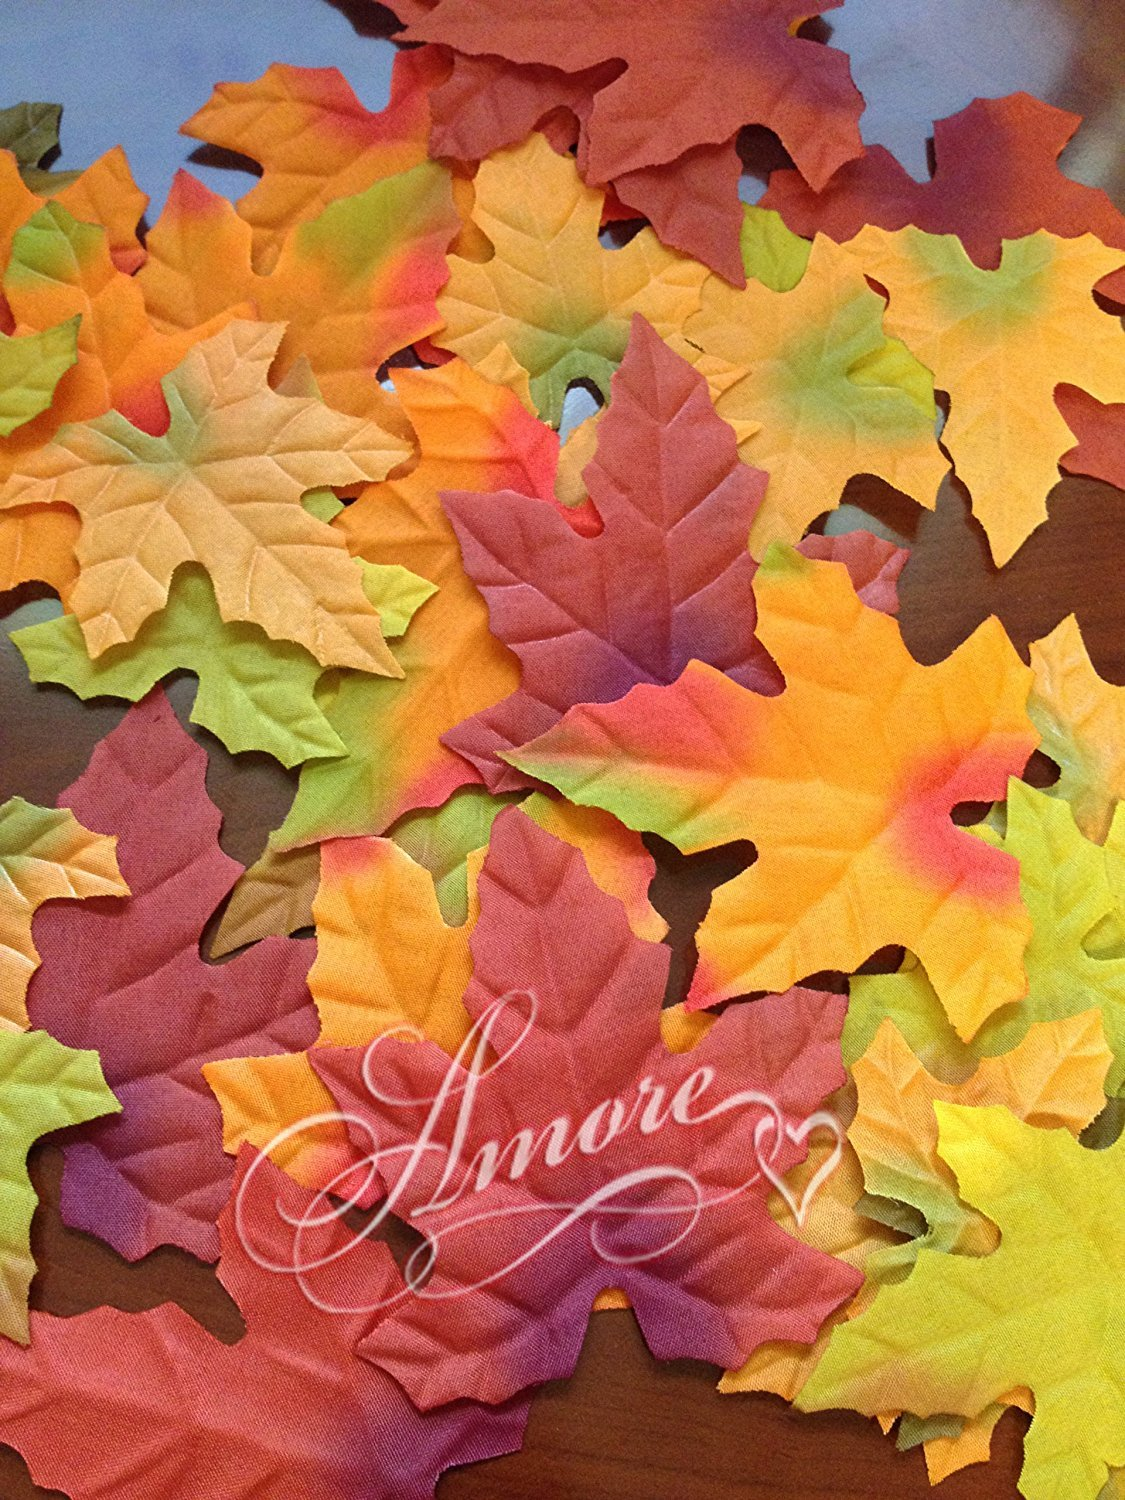 1000-Thanksgiving-Halloween-Wedding-Artificial-Fall-Maple-Autumn-Leaves-Mix-Color-Sizes-Great-Table-Scatters